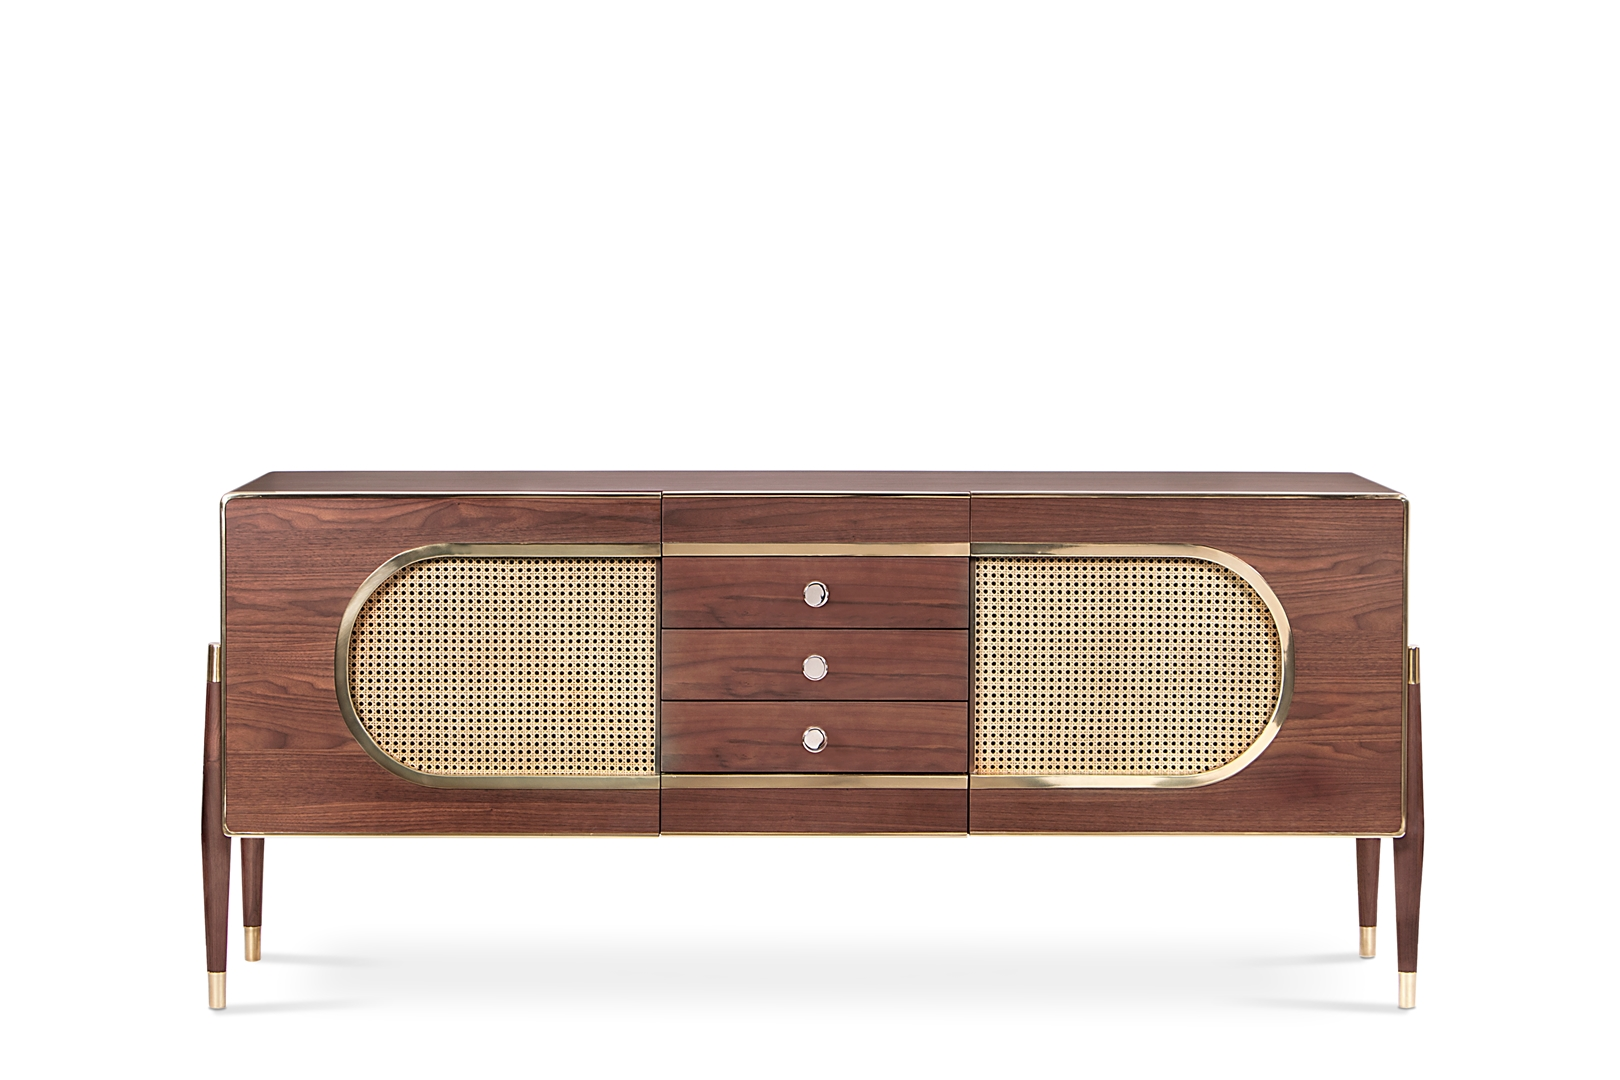 dandy-sideboard-01-HR (Copy)